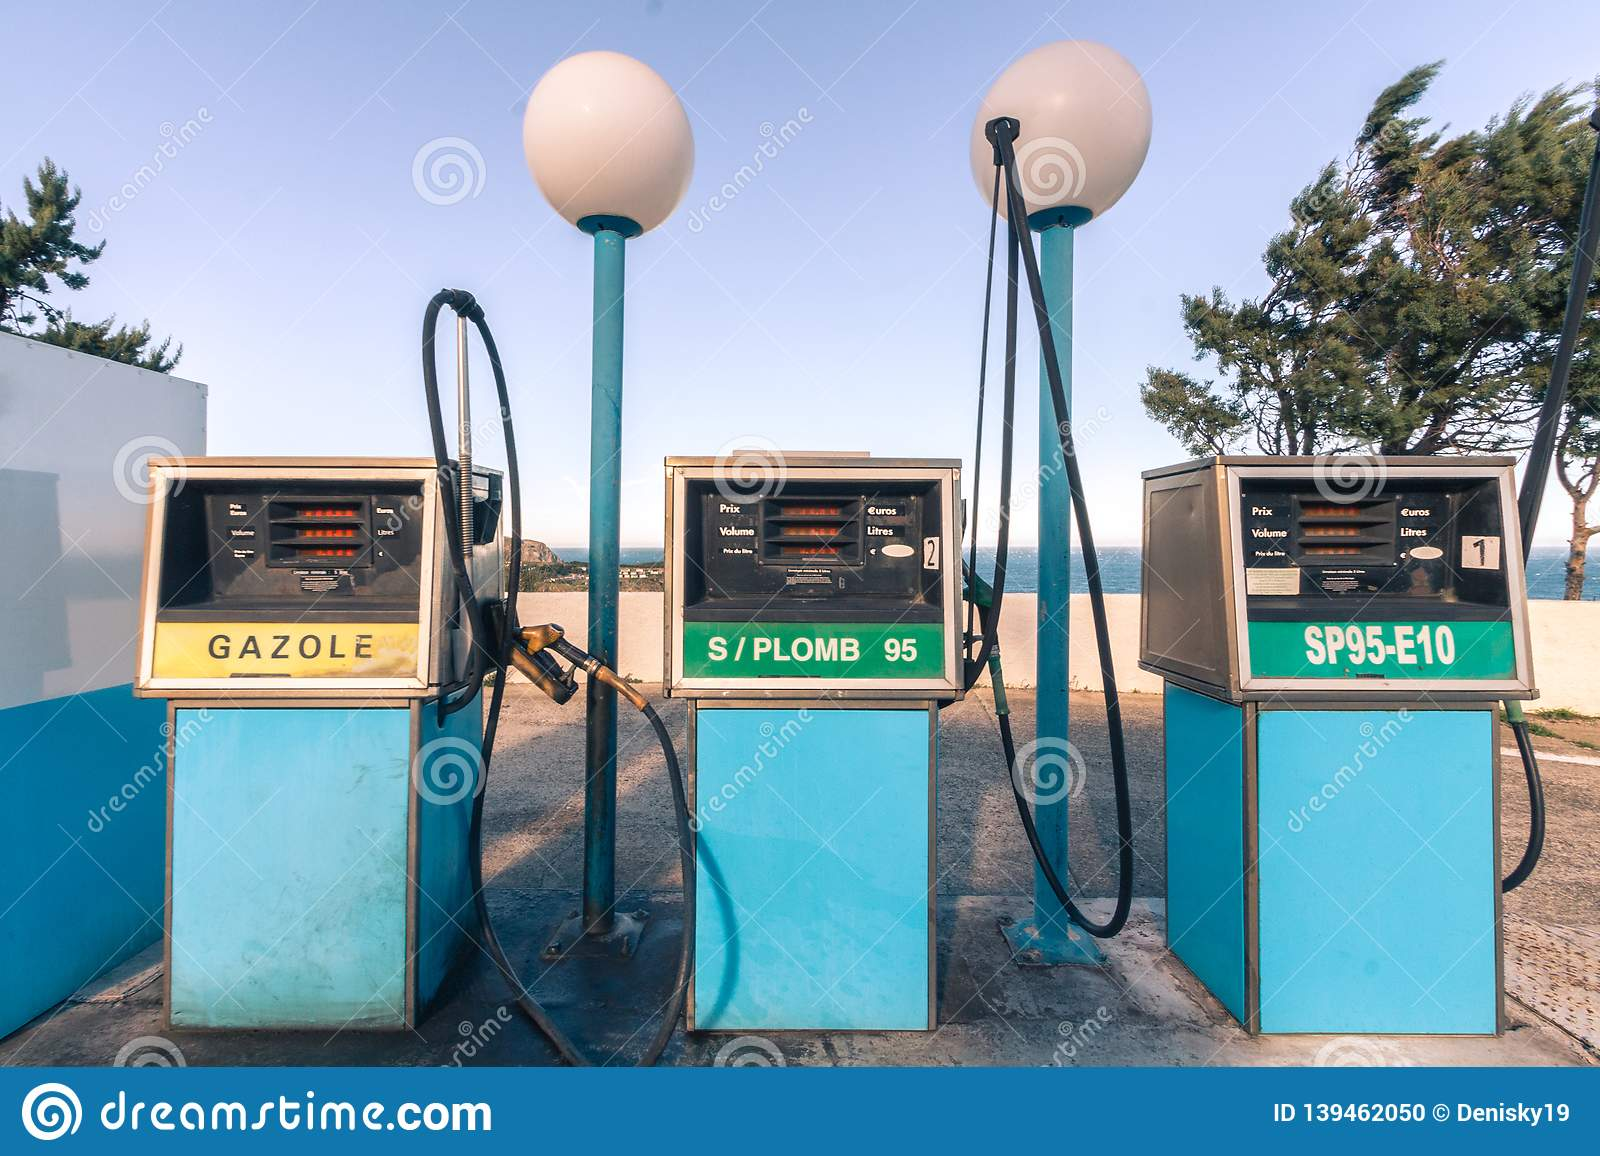 Old gas station in France. 80`s vintage style